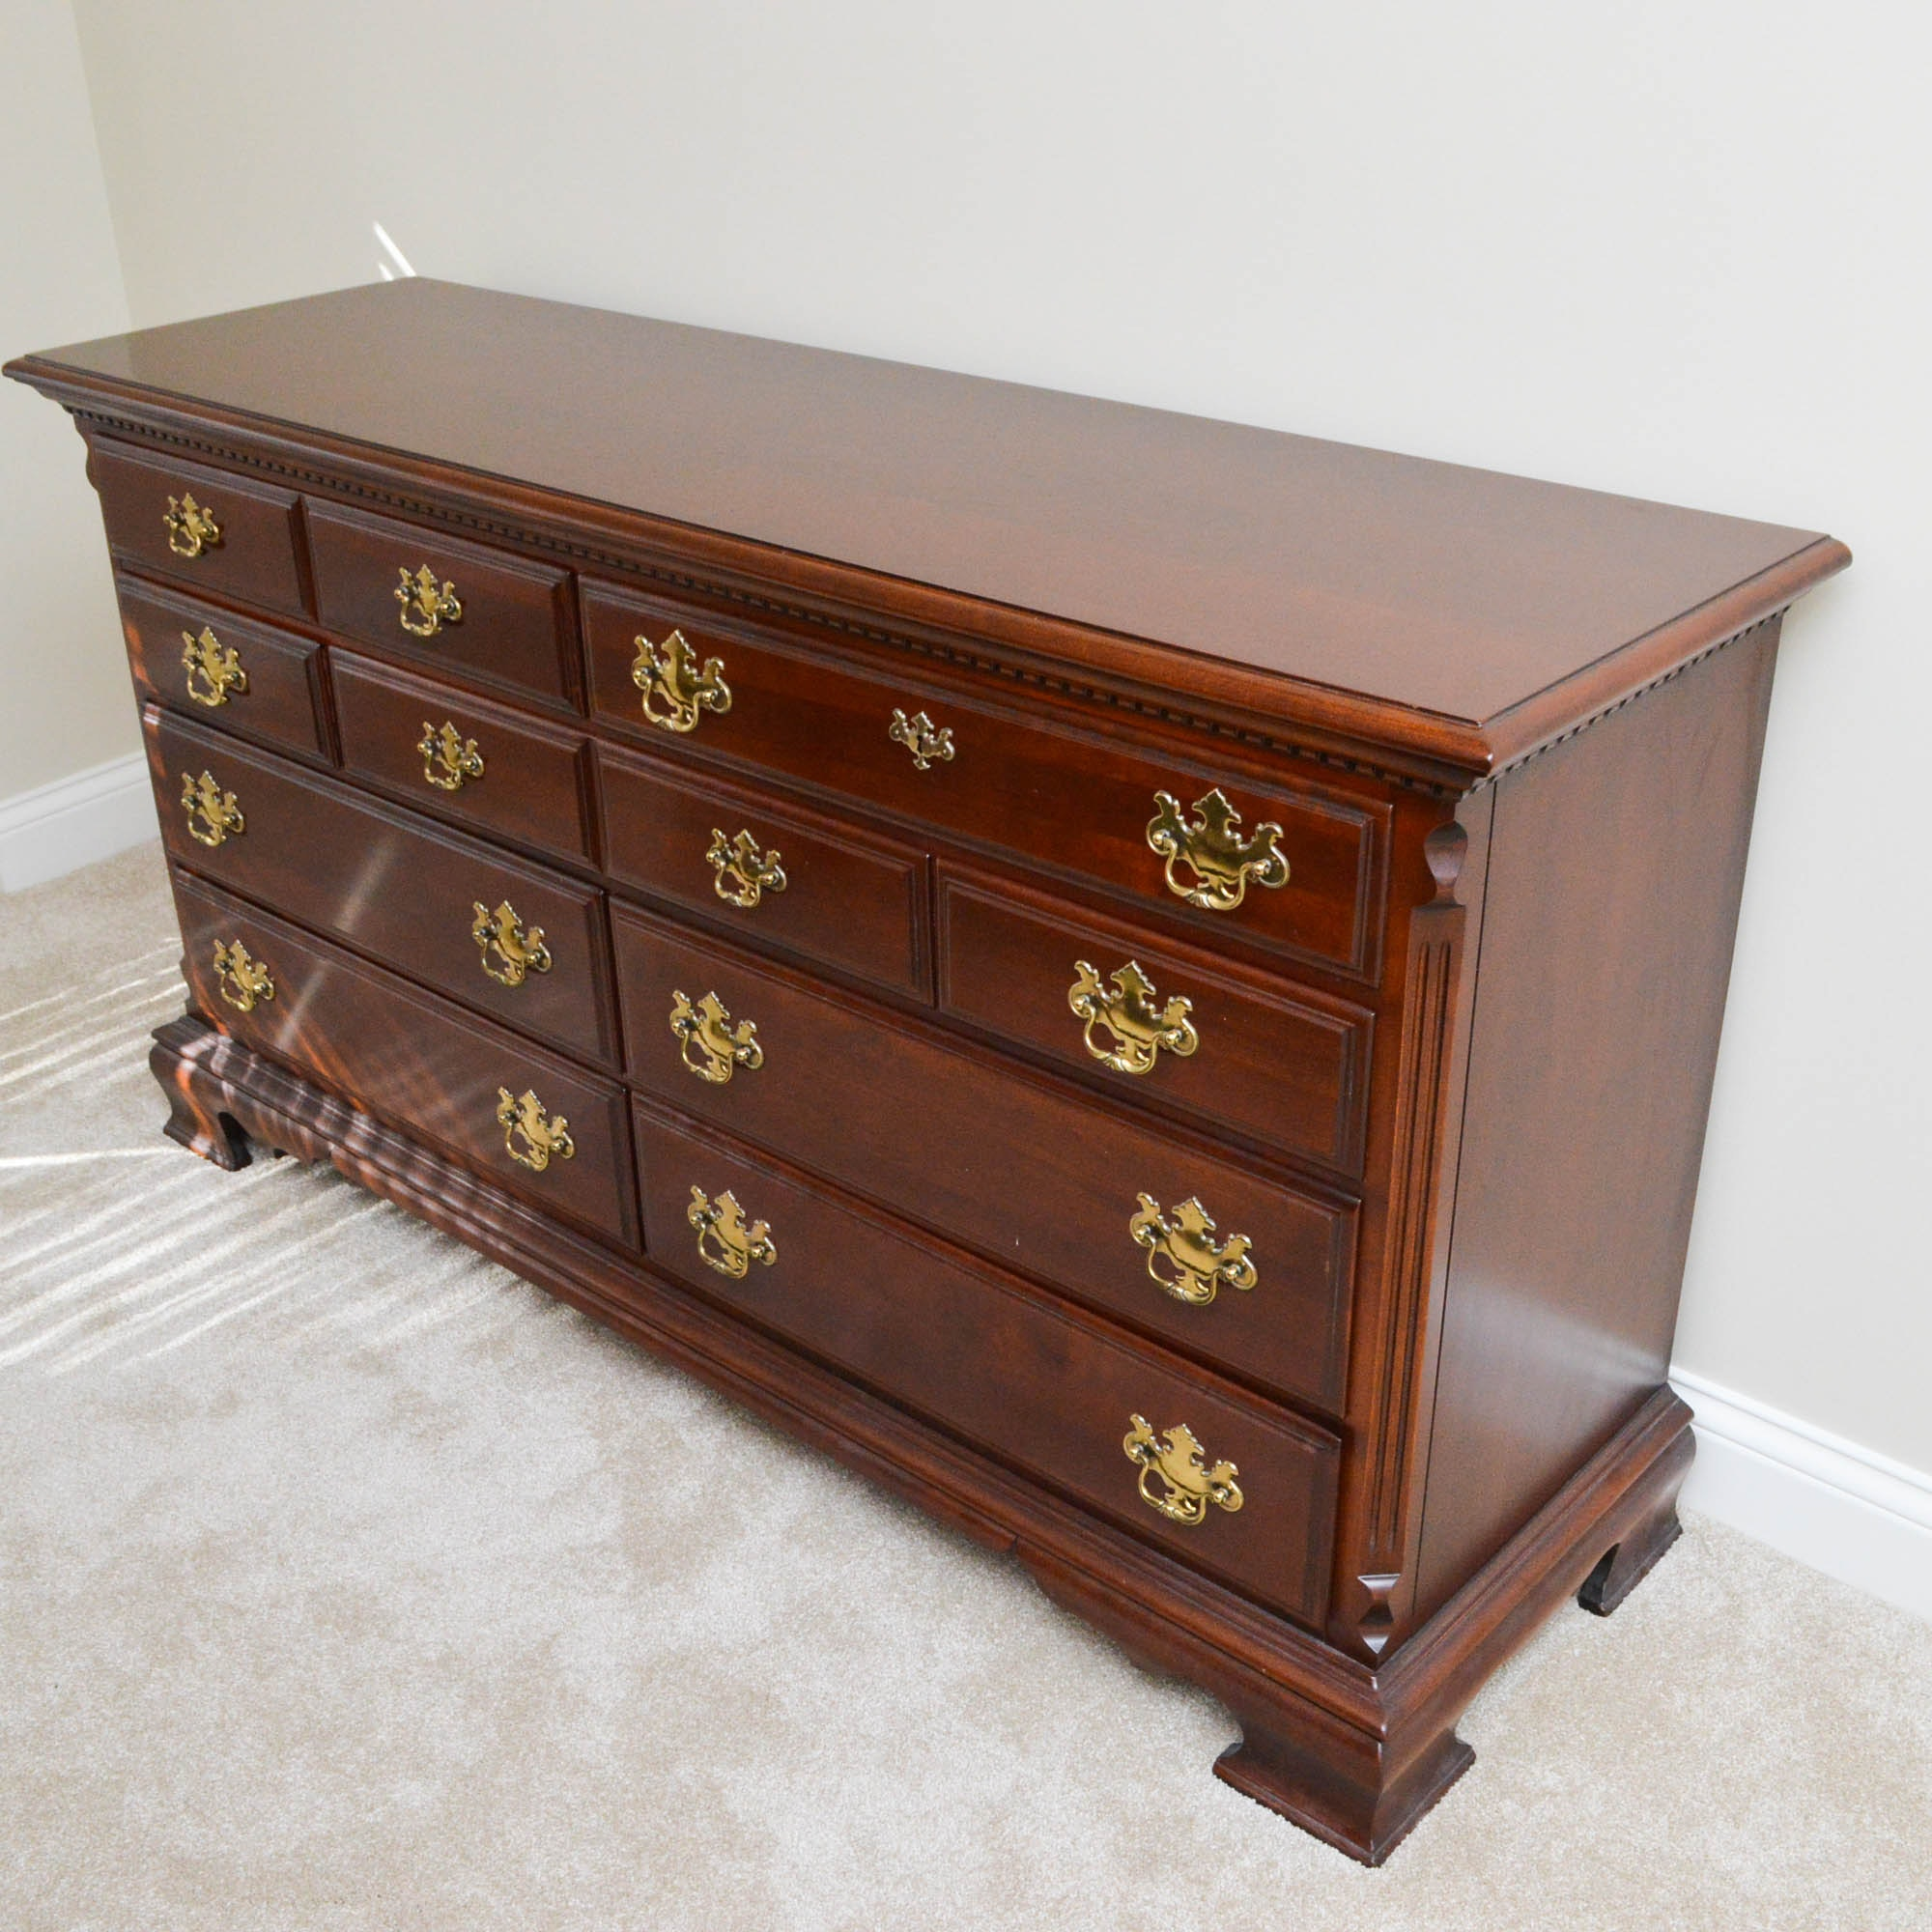 Chippendale Style Low Chest of Drawers by Lexington